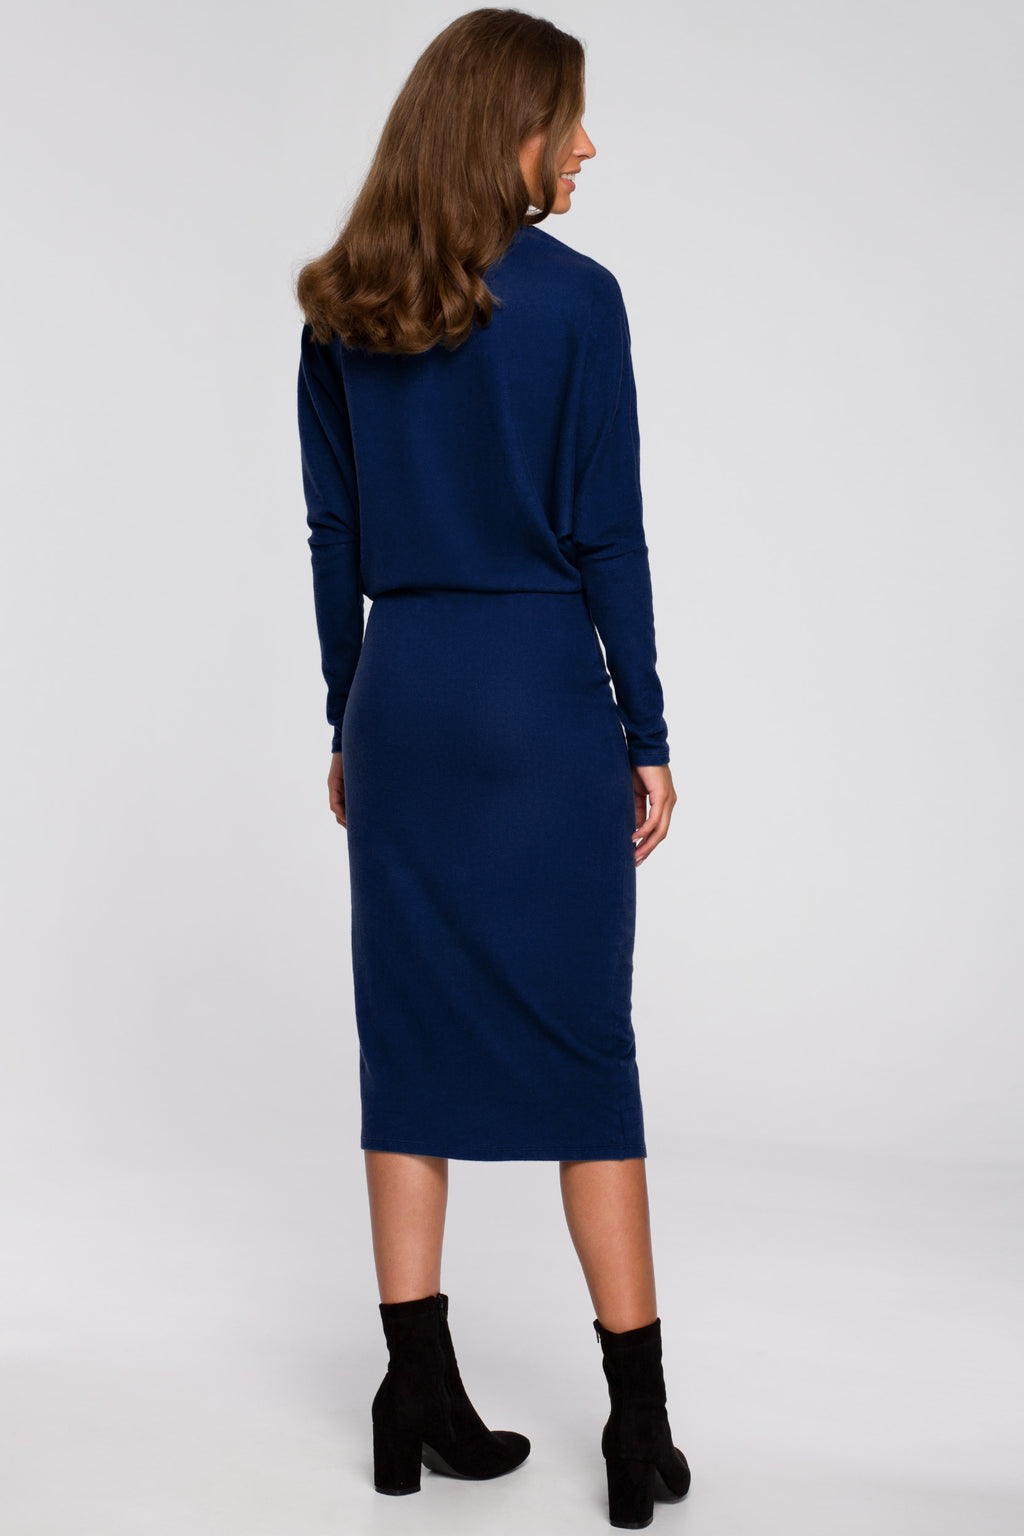 Navy Blue Viscose Midi Dress With Draped Neckline - So Chic Boutique